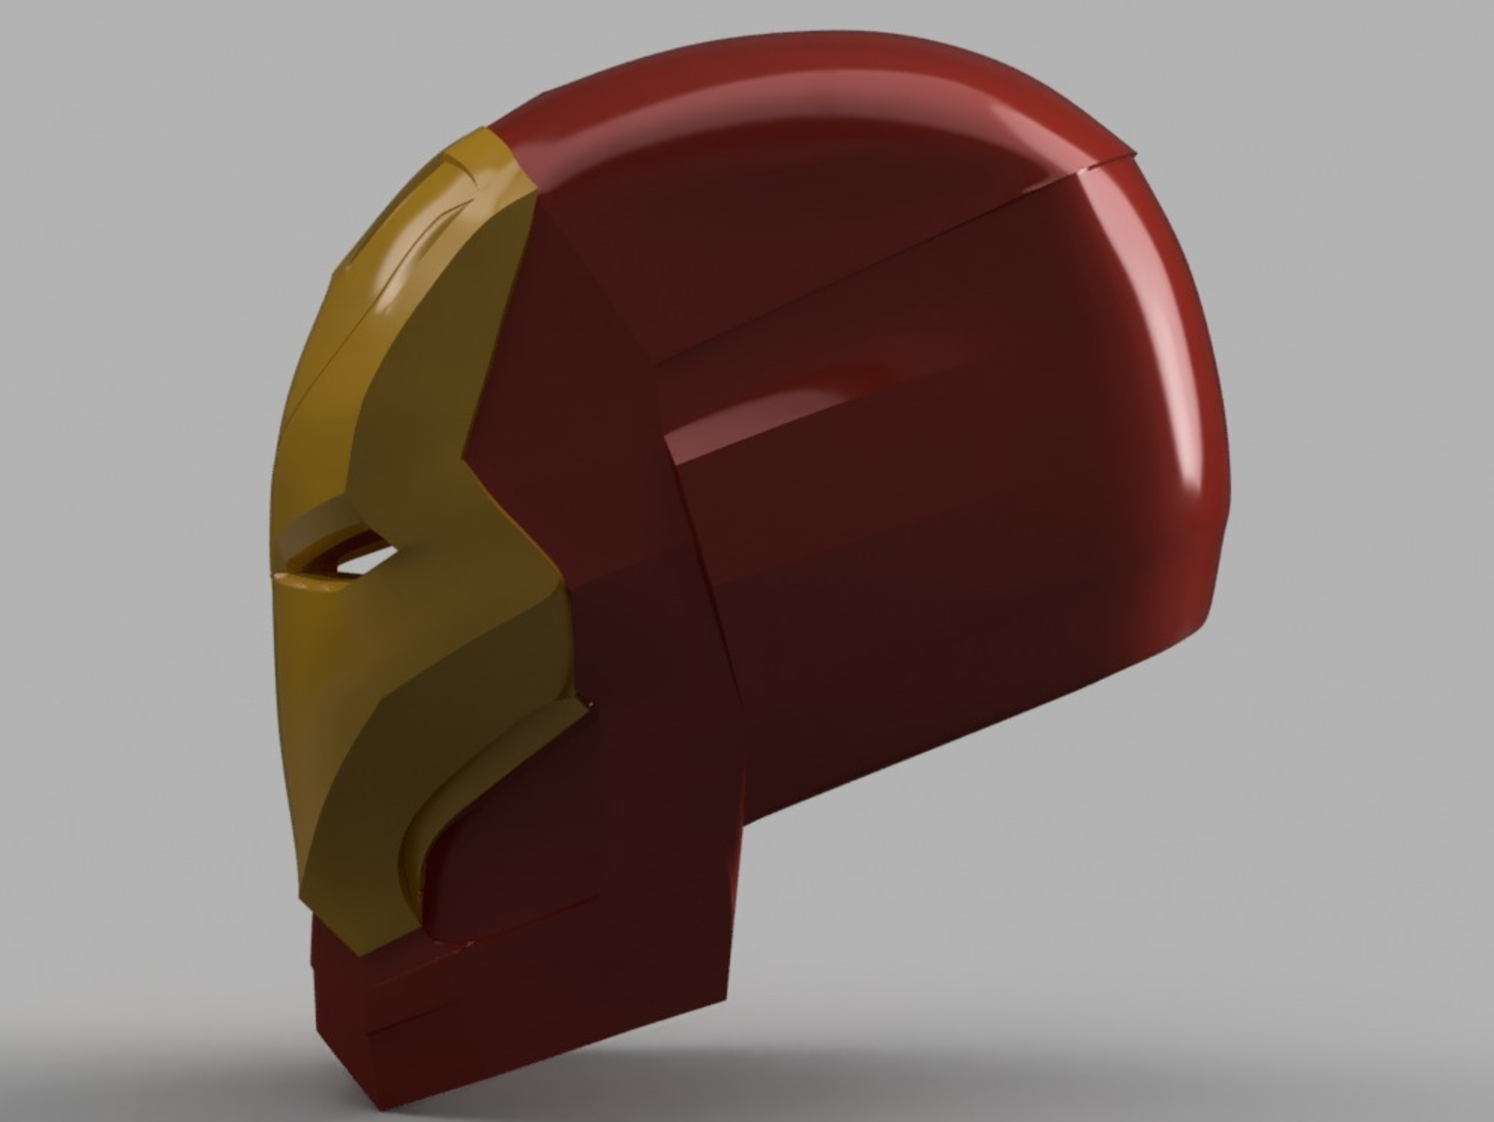 Capture d'écran 2017-09-15 à 09.57.42.png Download free STL file Iron Man Mark 46 Helmet (Captain America Civil War) • 3D printing template, VillainousPropShop